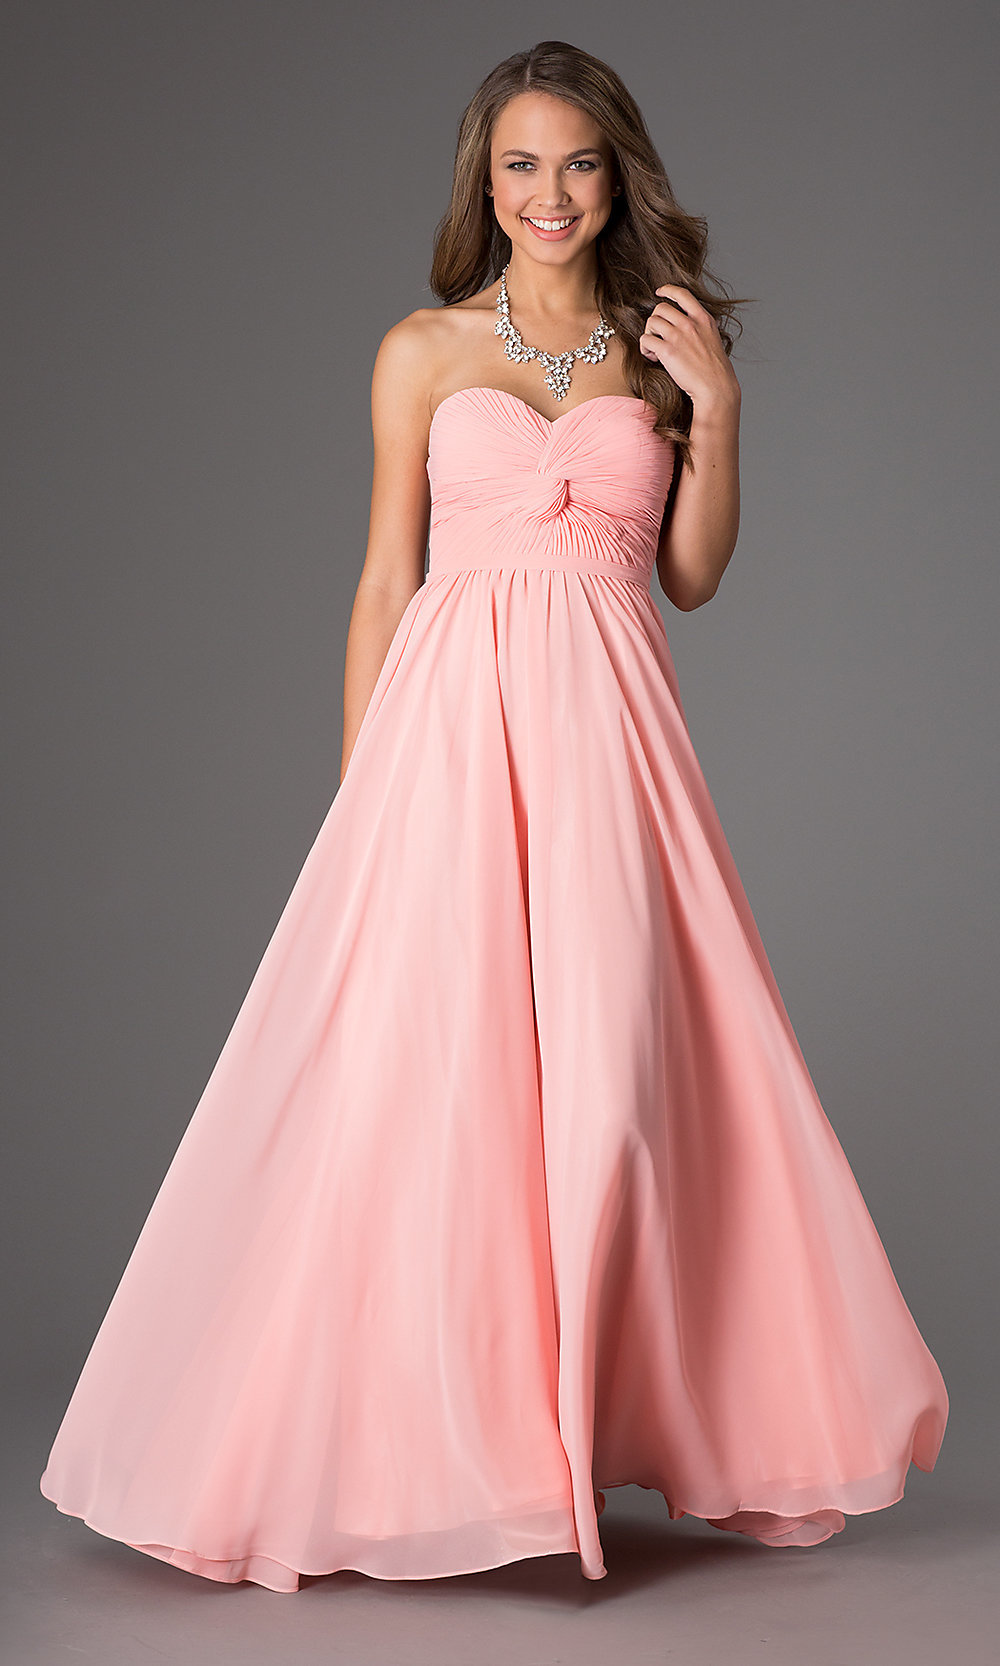 Lace Up Long Strapless Prom Dress